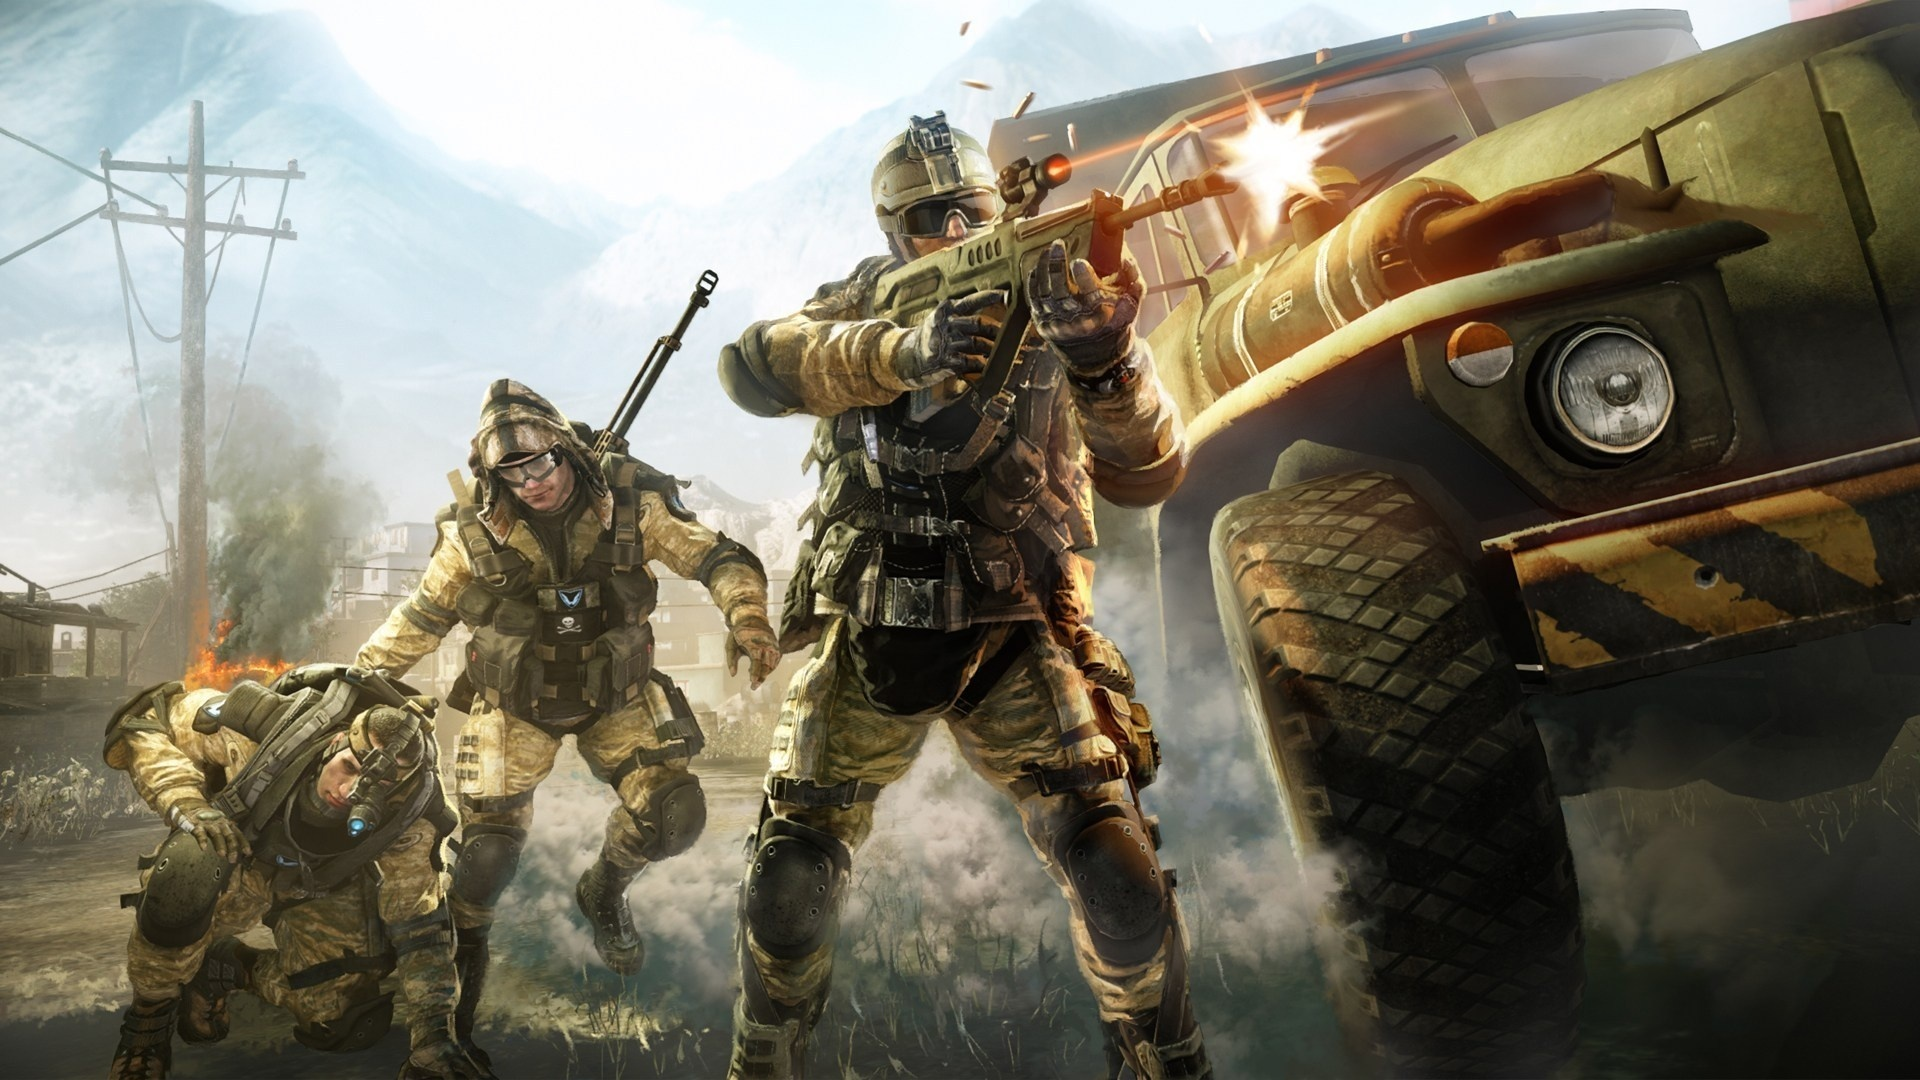 Warface military soldiers warriors weapons guns explosions shooting